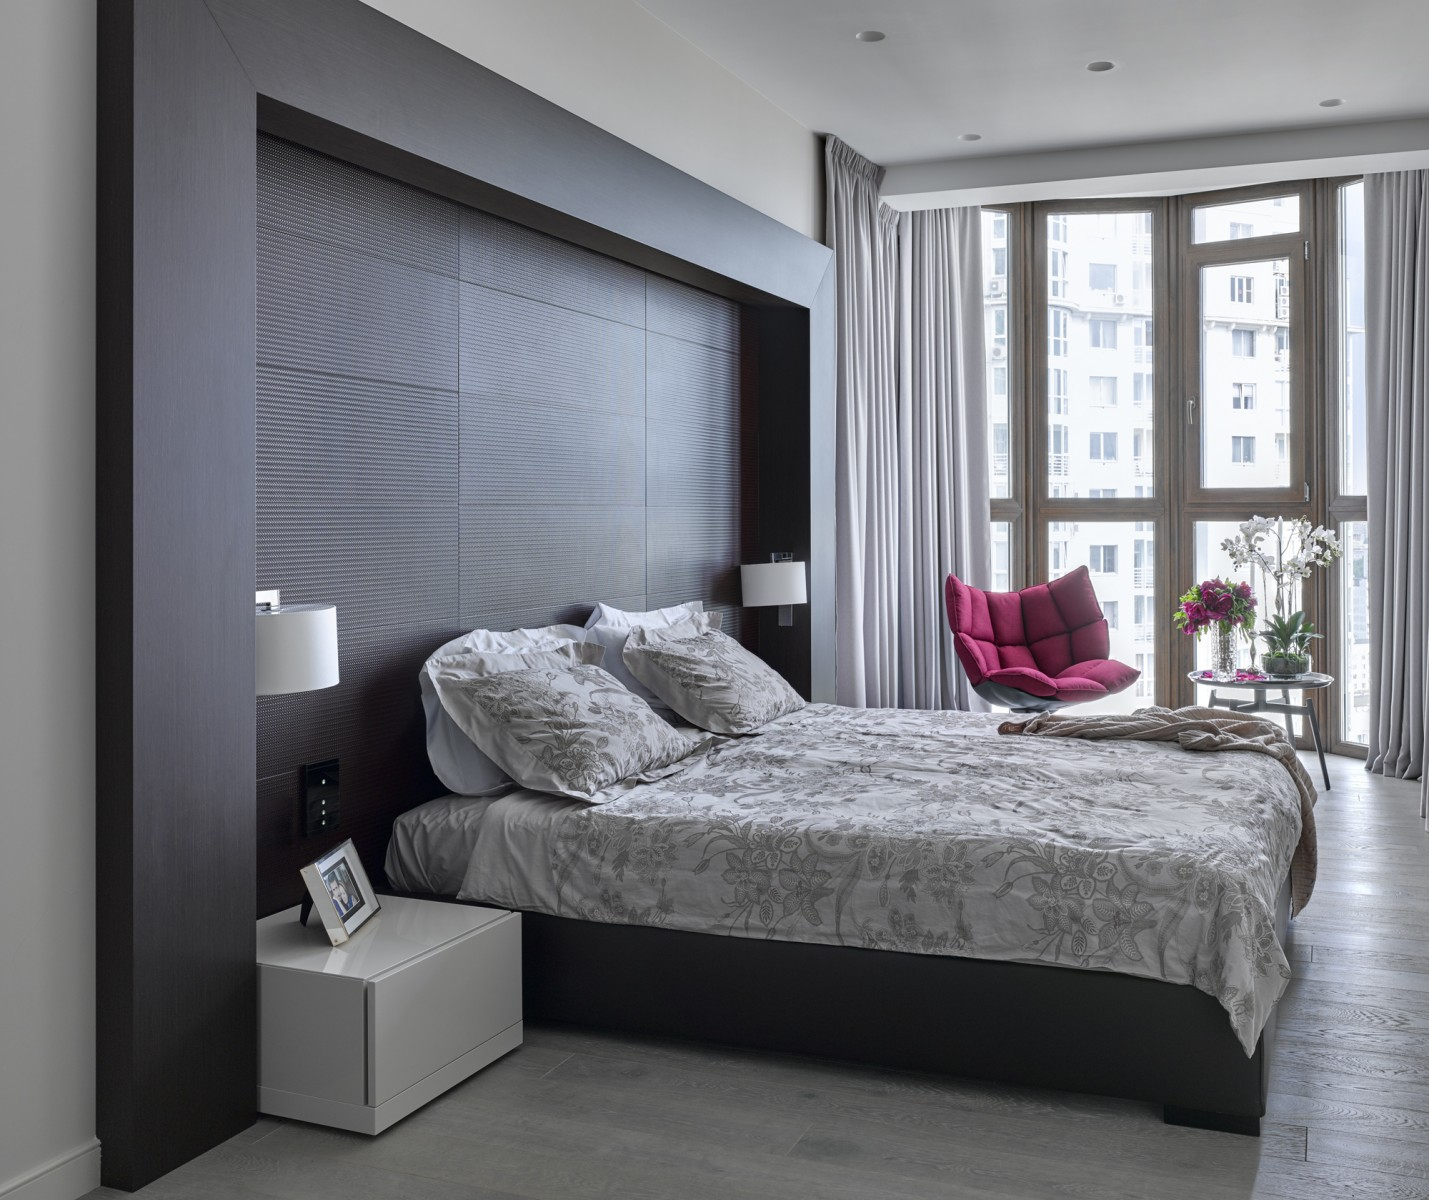 20 Small Bedroom Ideas That Will Leave You Speechless ... on Bedroom Ideas For Small Rooms  id=81050